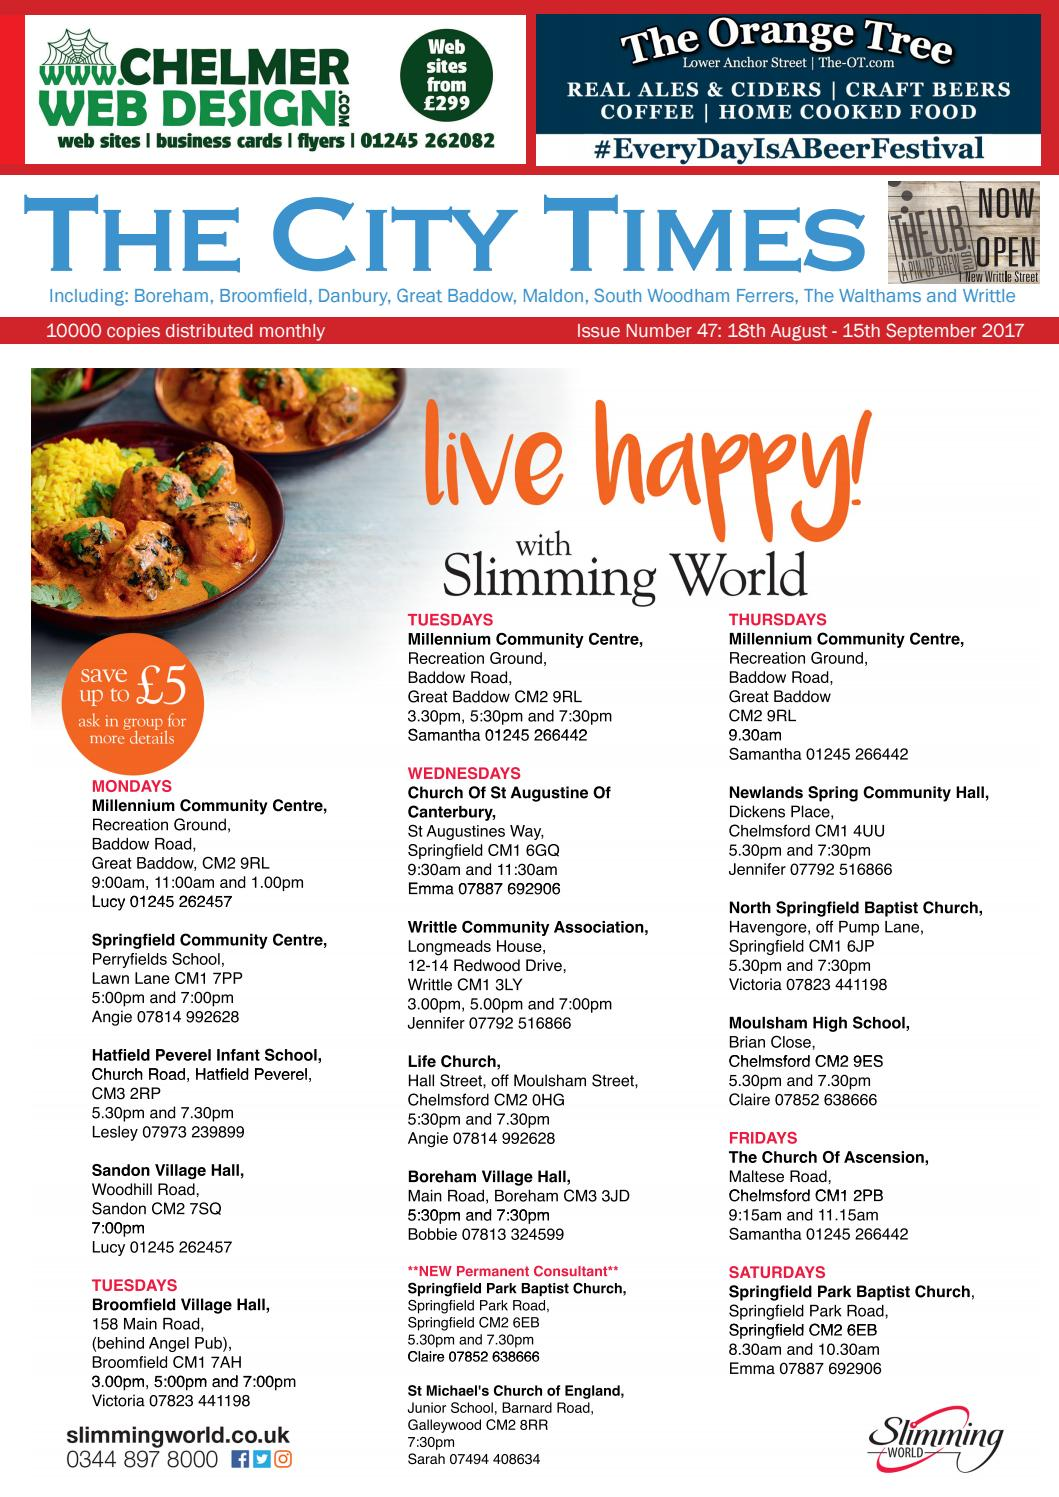 The City Times August September 2017